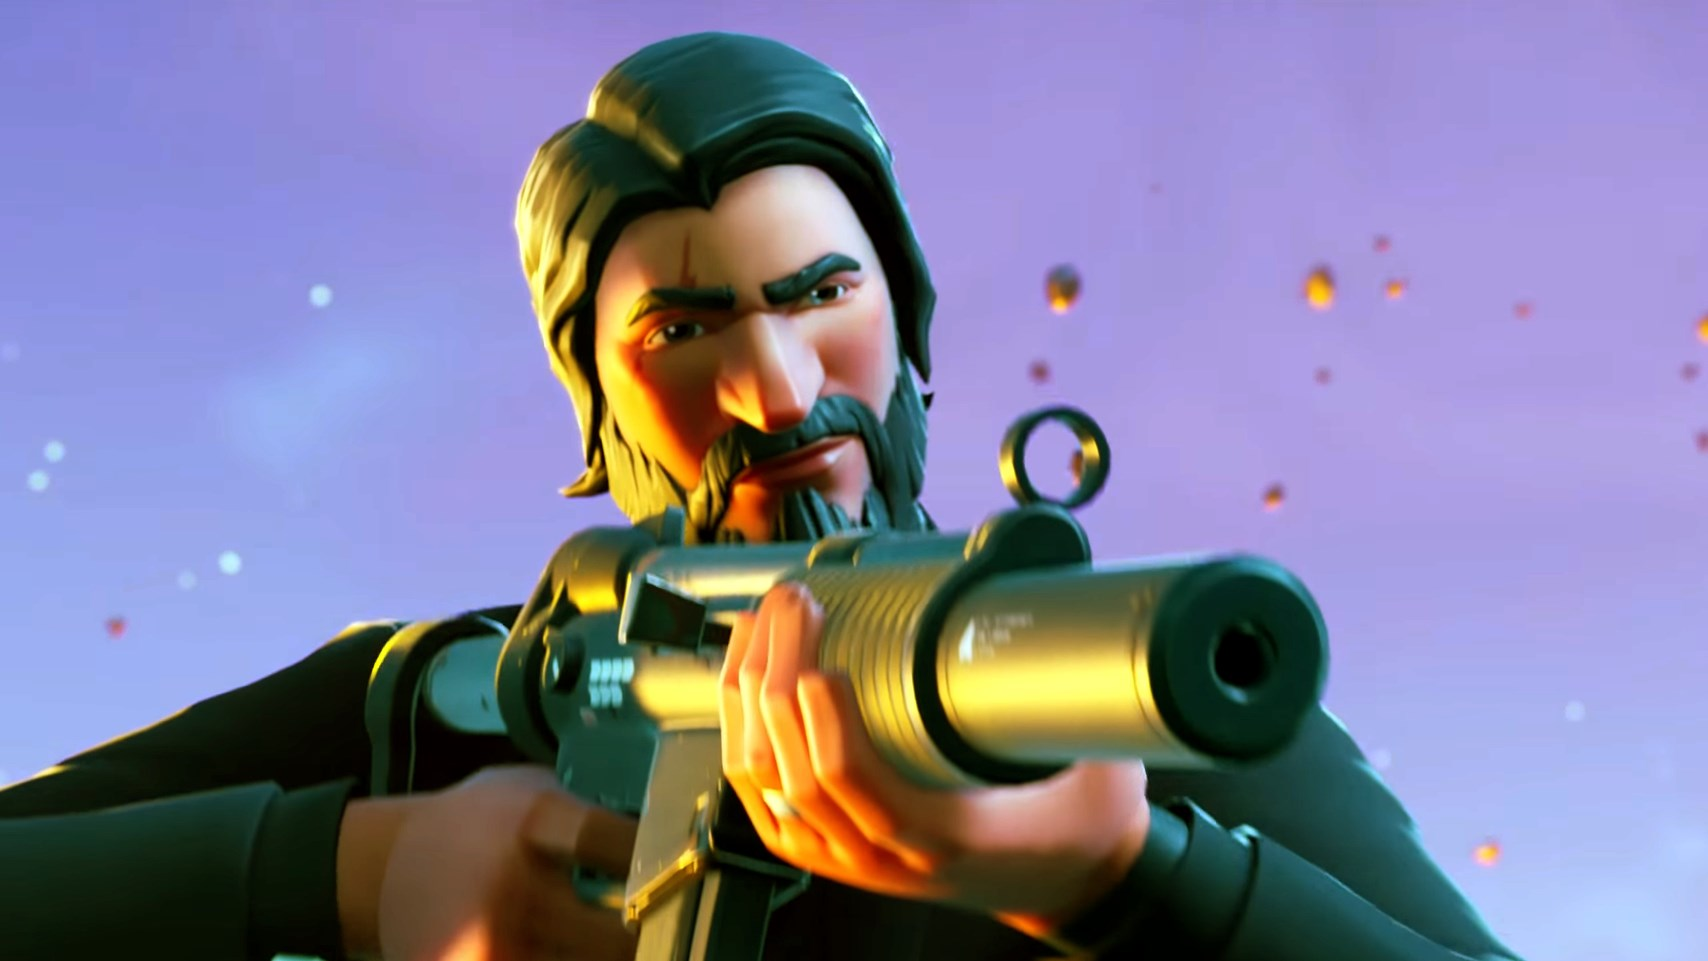 John Wick Is Thinking He's Back Thanks To New Fortnite Crossover Event